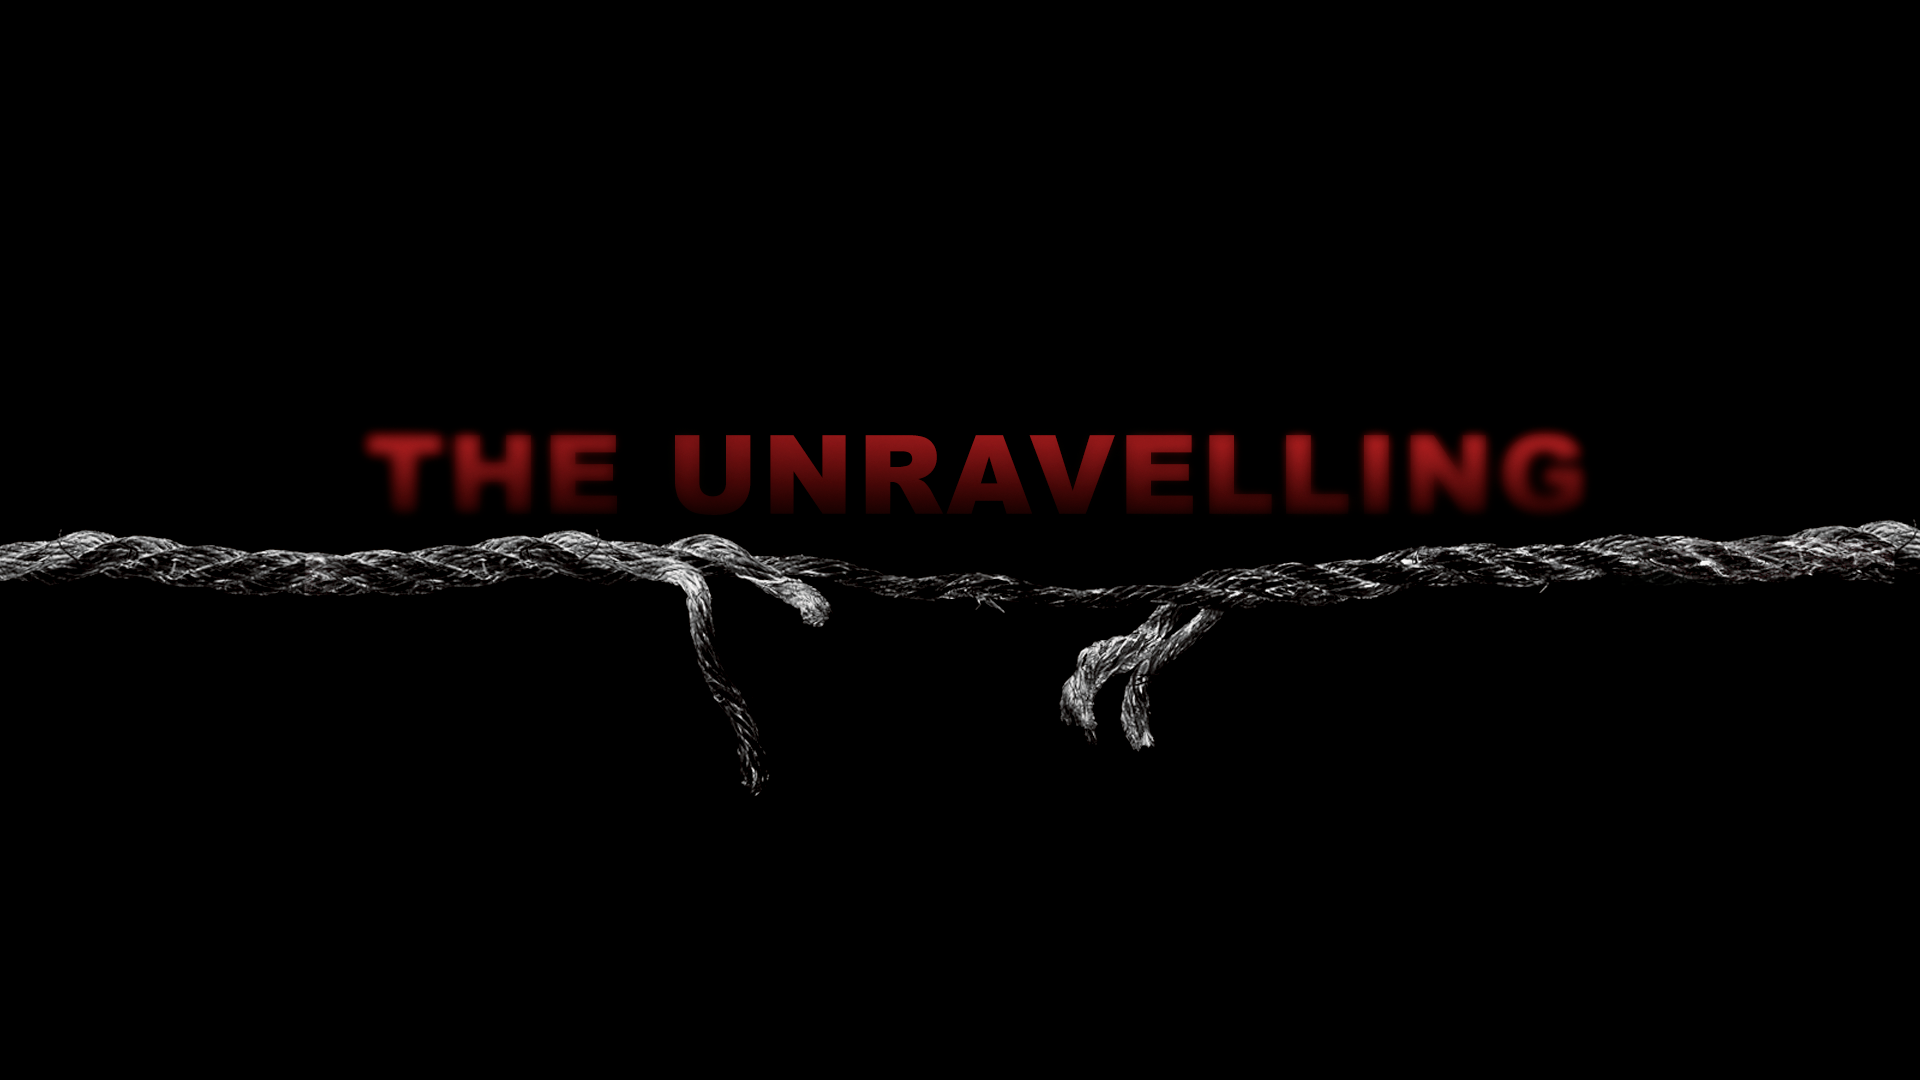 The Unravelling 9:  What's Your Story, pt. 2